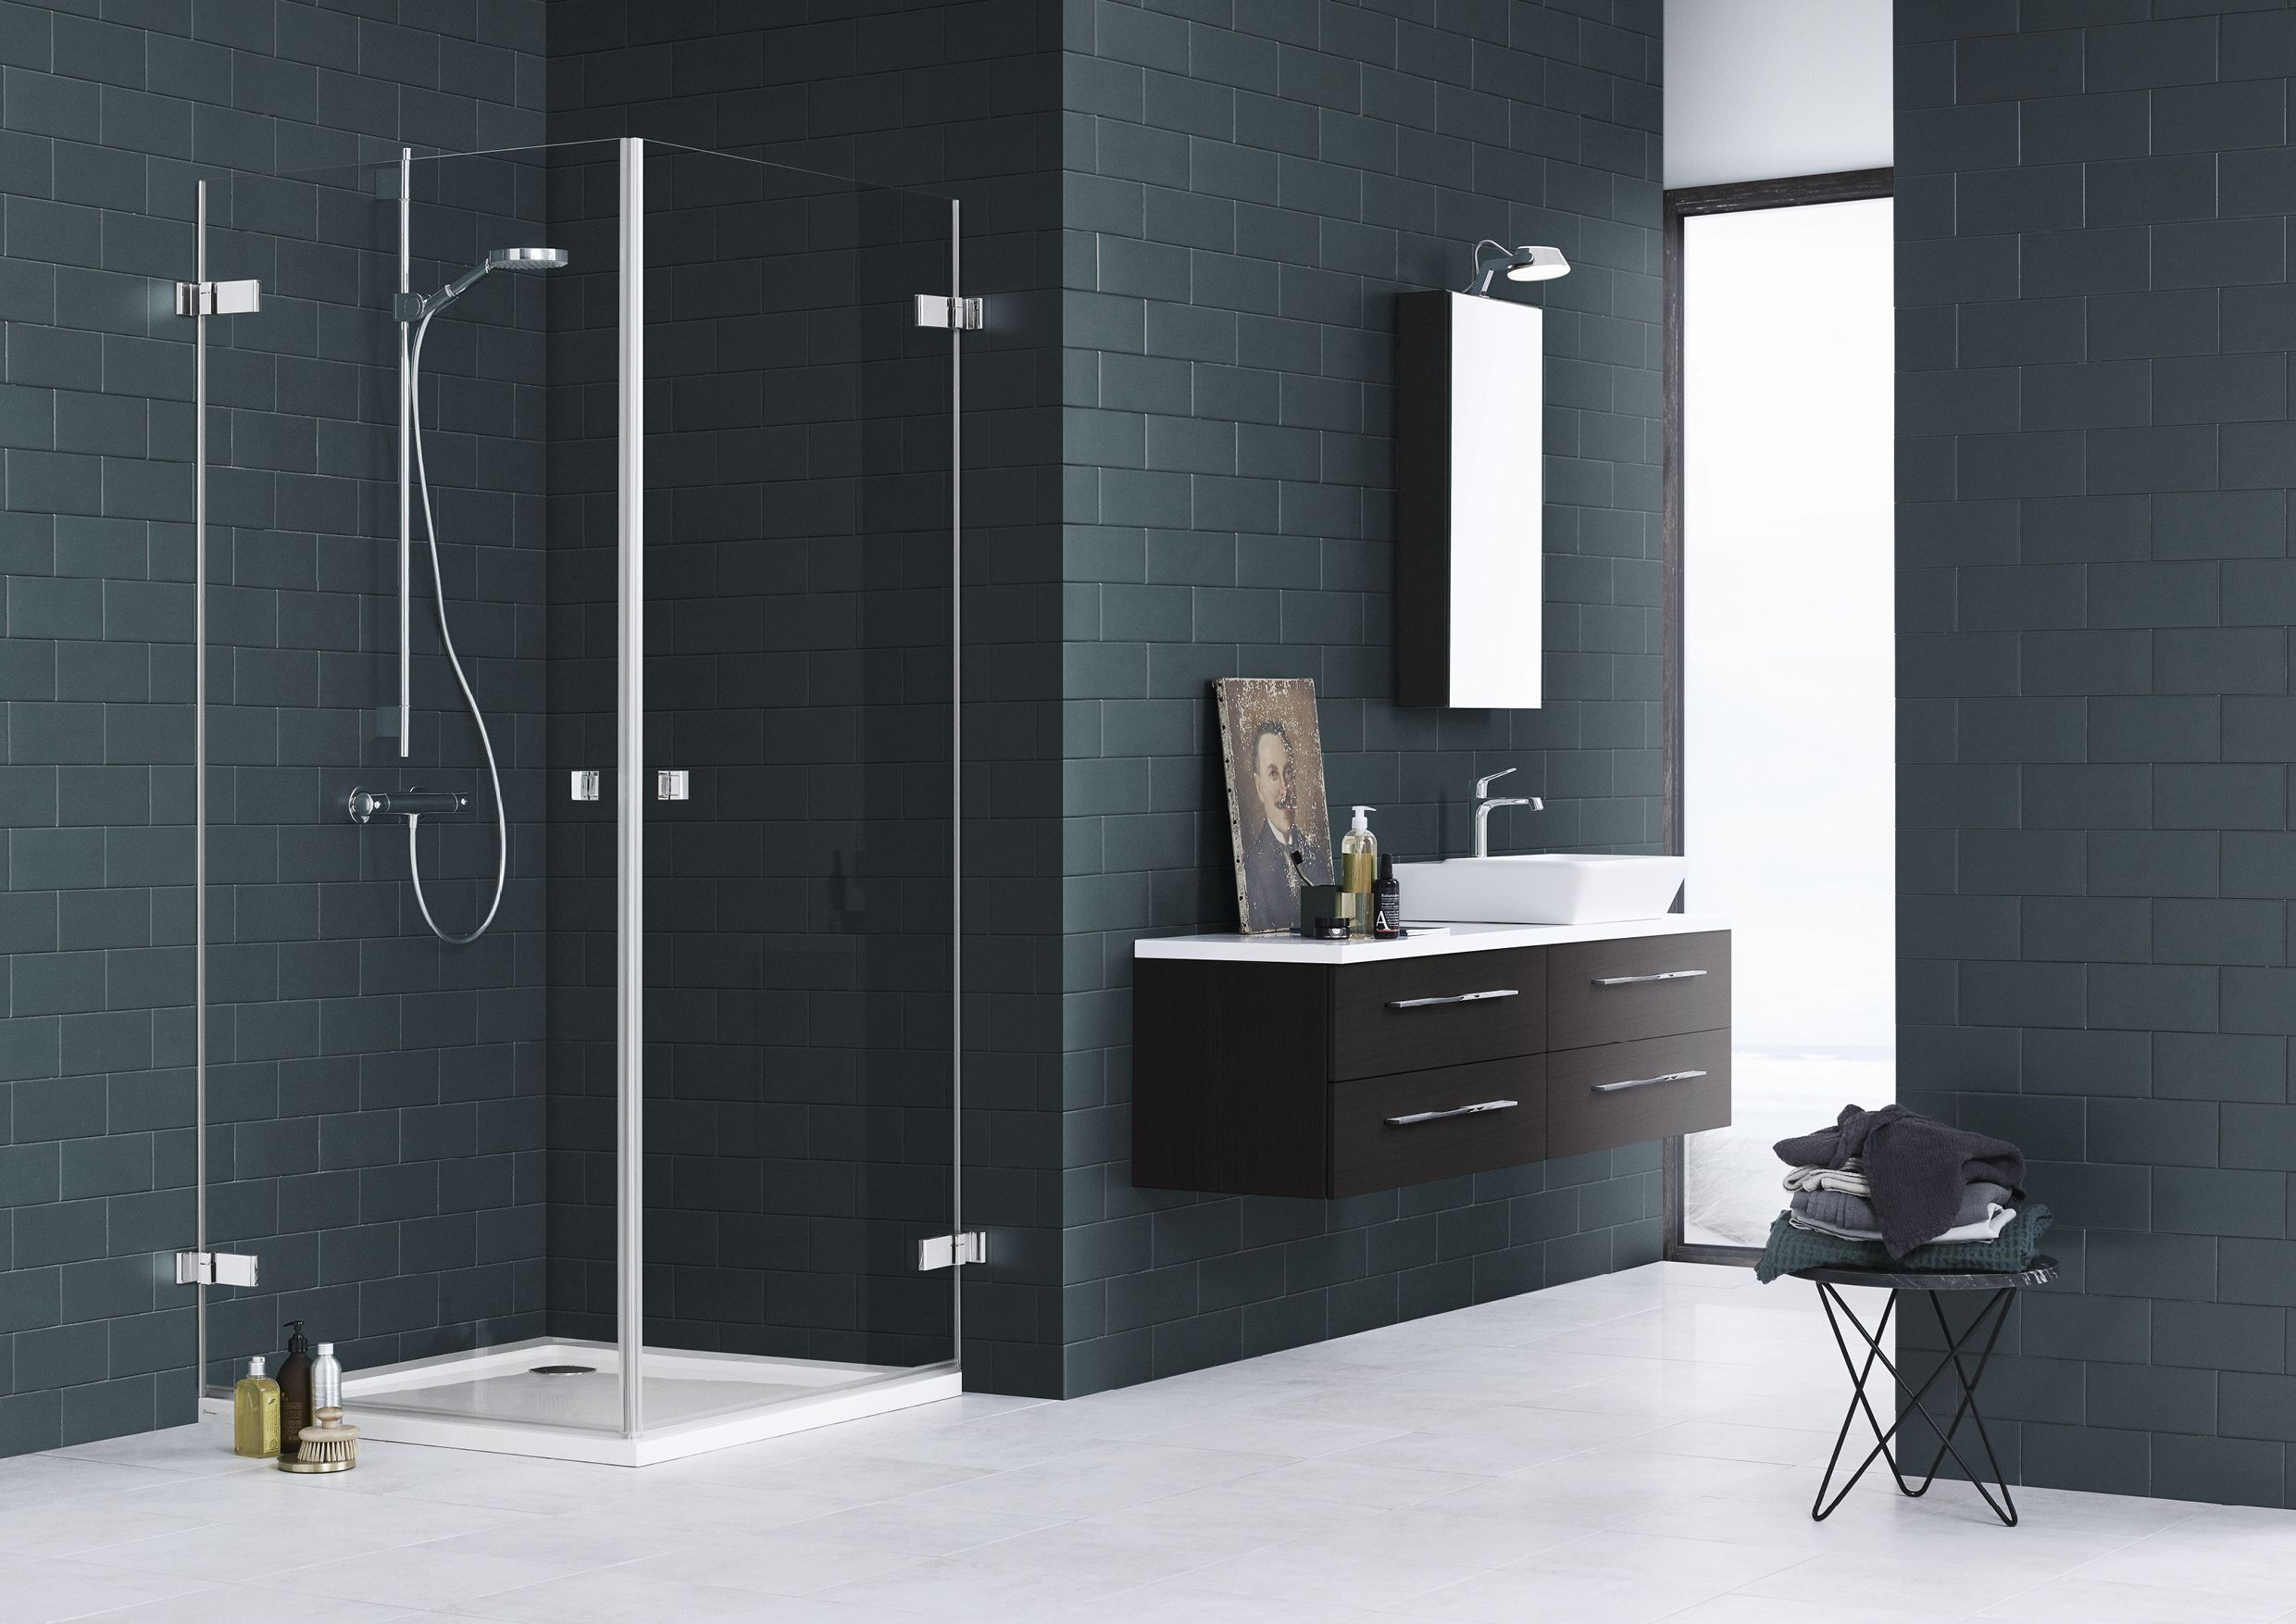 The AIR shower series is designed with a simple floating expression. Here the two doors solution is combined with a dark oak Calidris vanity unit.